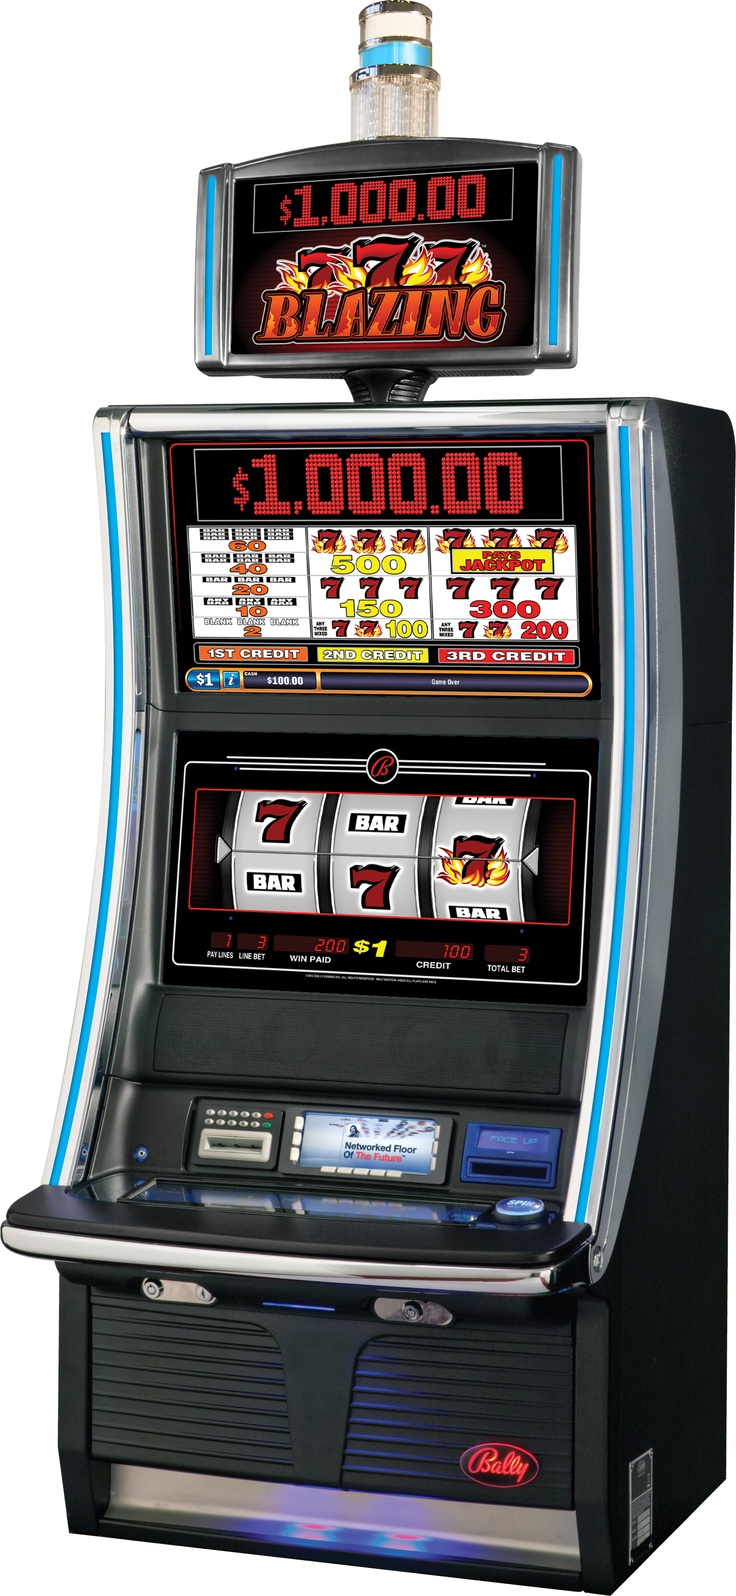 Networked casino slot machines gambling risks statistics